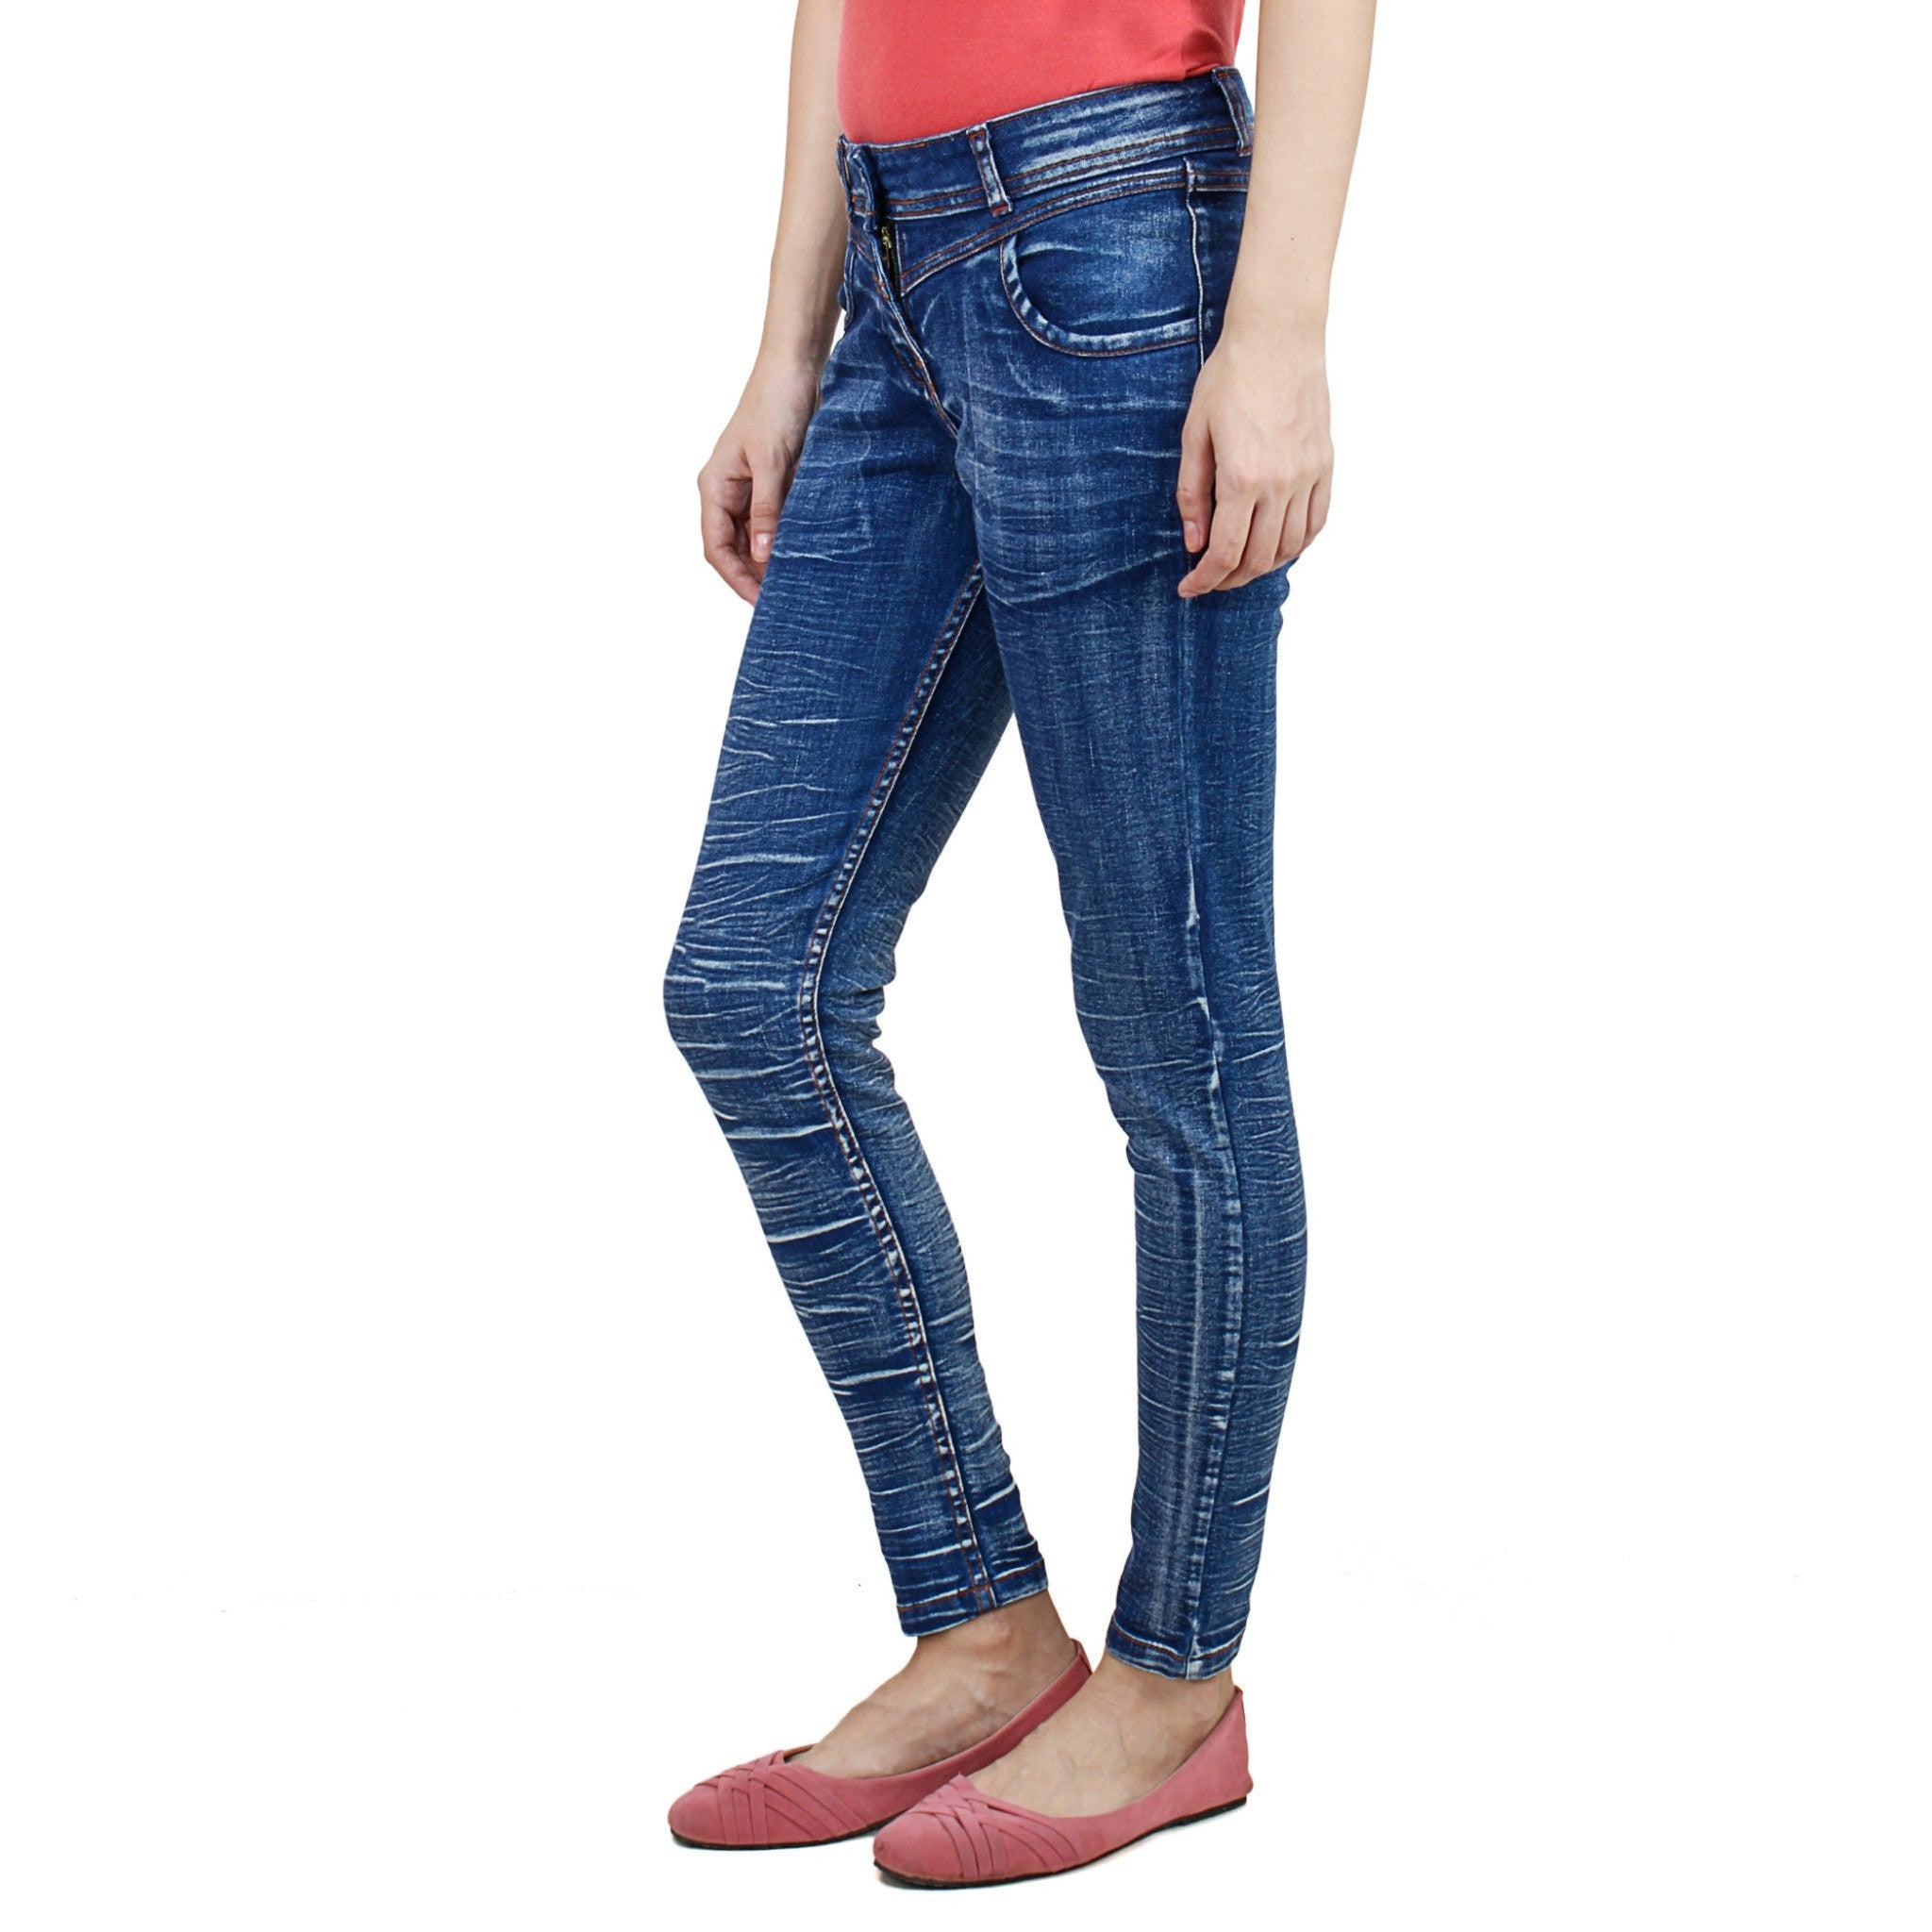 Uber Blue Denim Jeans left side view